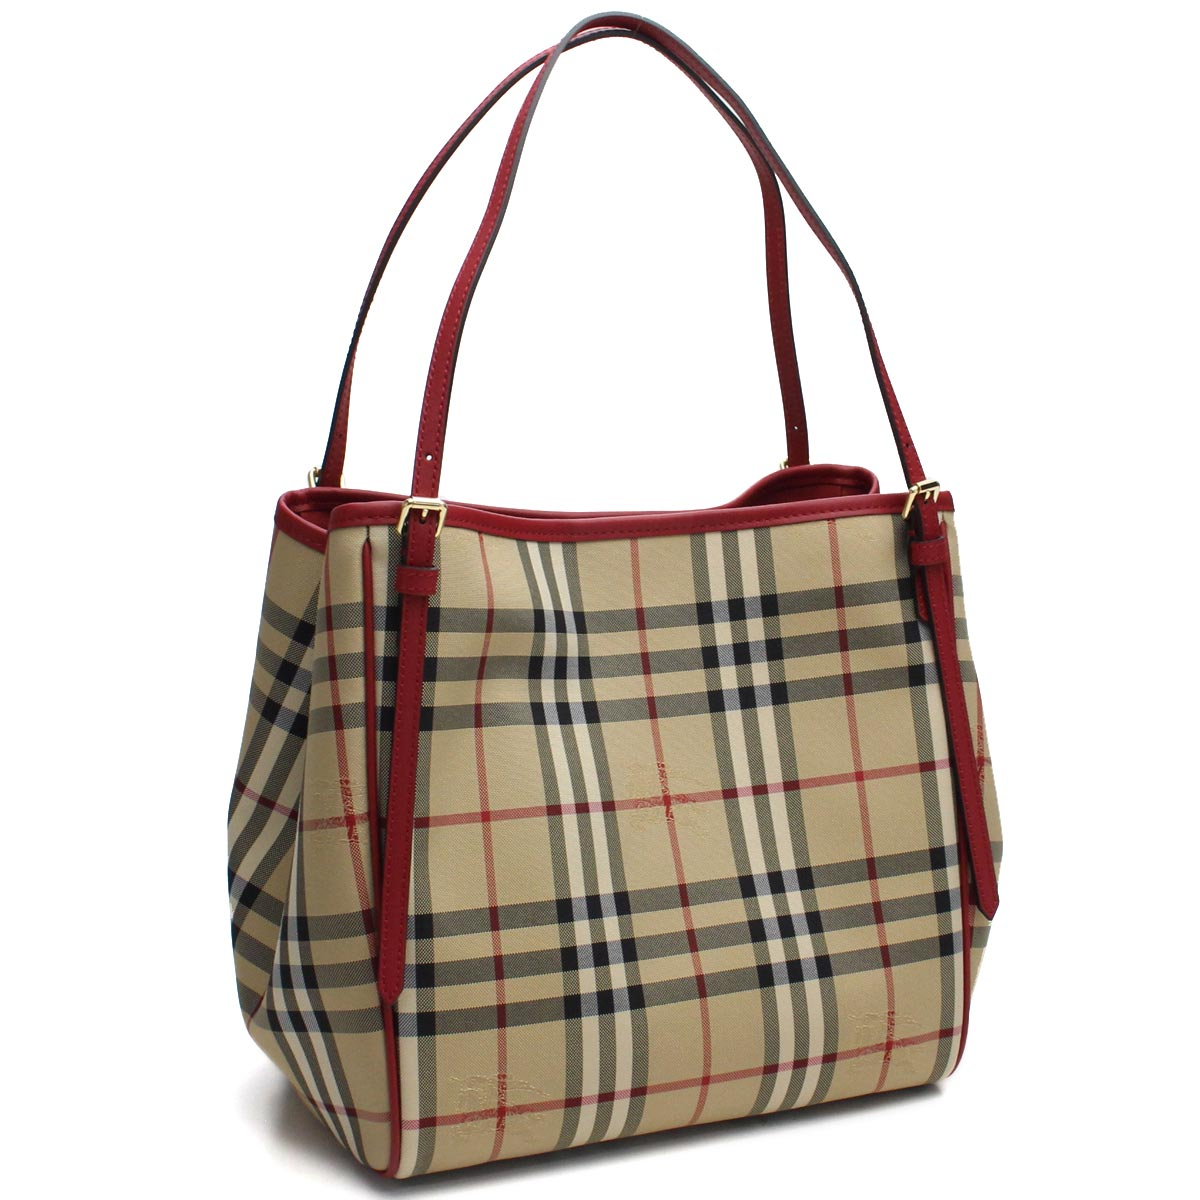 a0d858f2eb70 Bighit The total brand wholesale  Burberry (BURBERRY) SM CANTER Burberry  check tote bag 4028923 HONEY PARADE RED red system